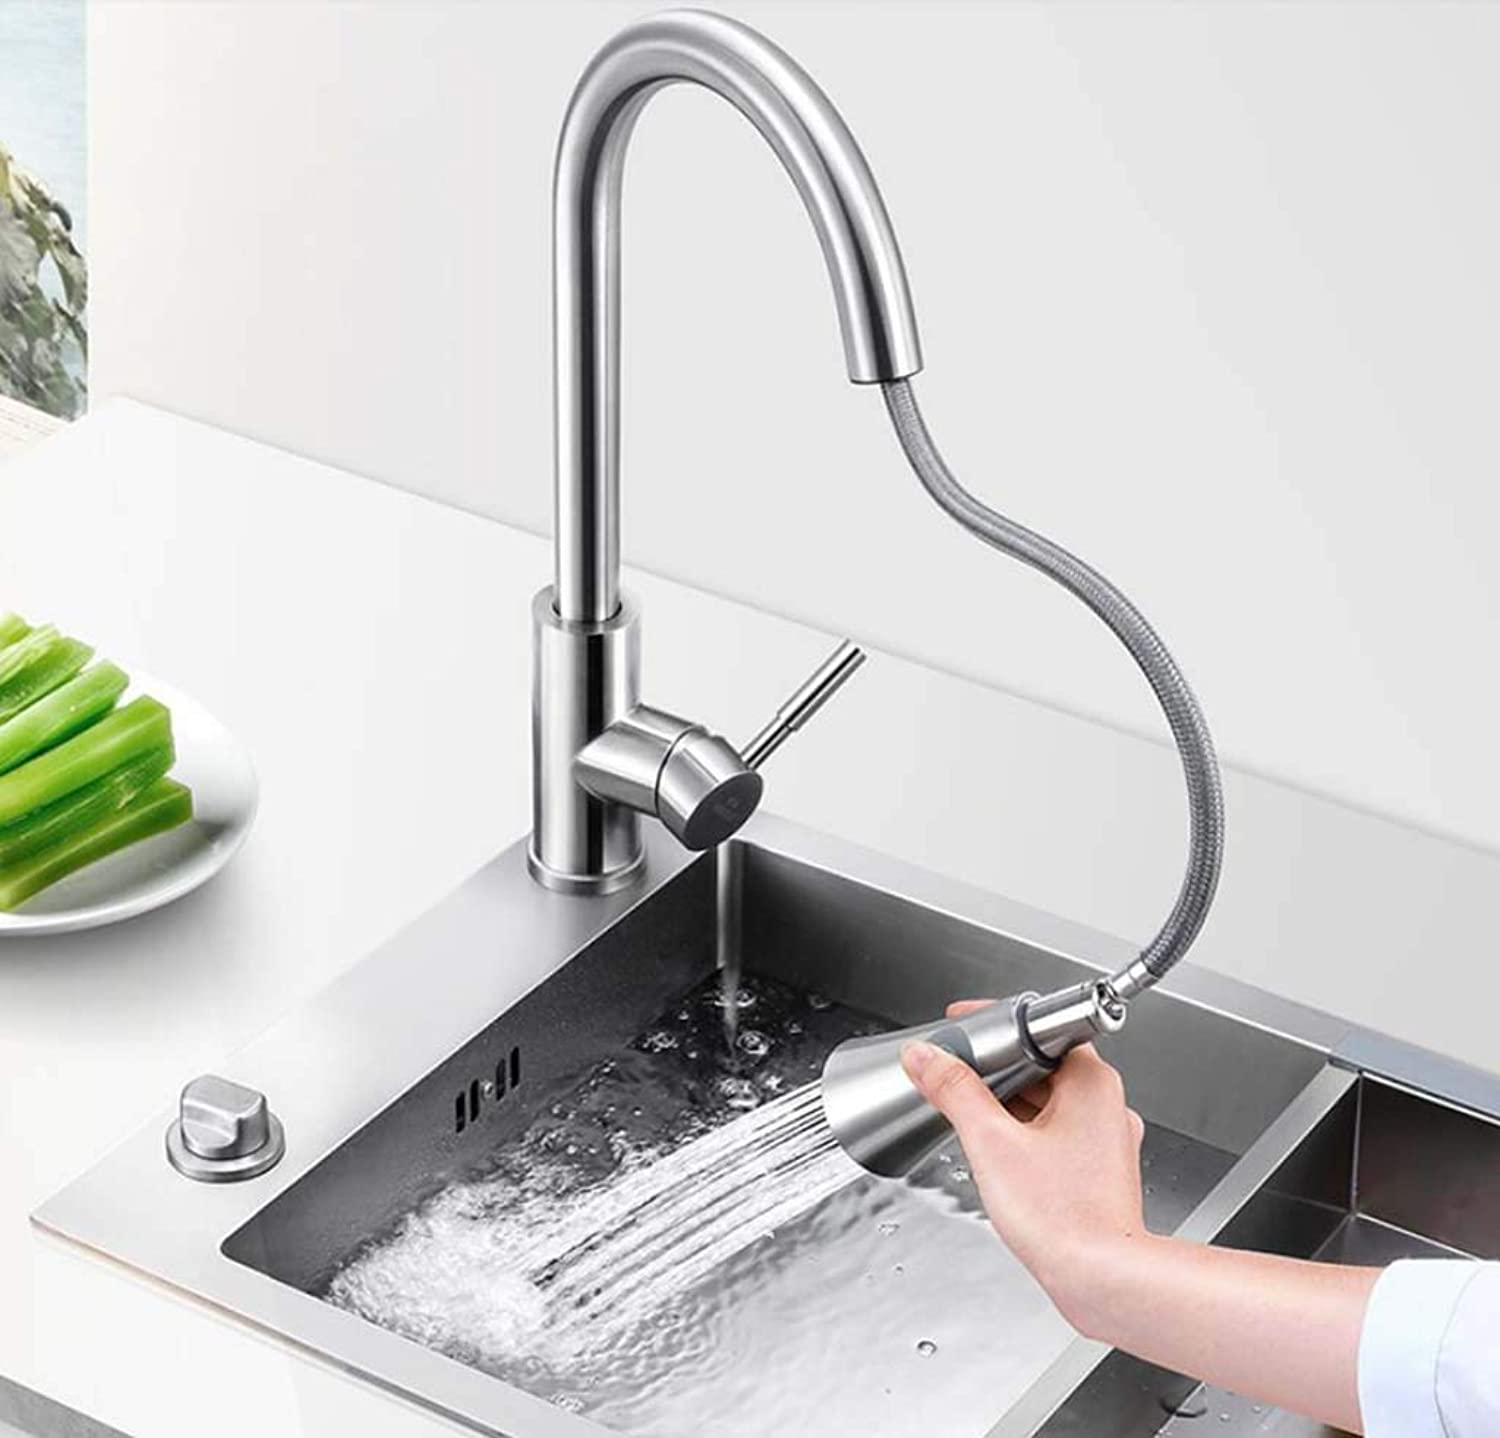 XRFHZT redary faucet hot and cold kitchen faucet sink faucet sink faucet